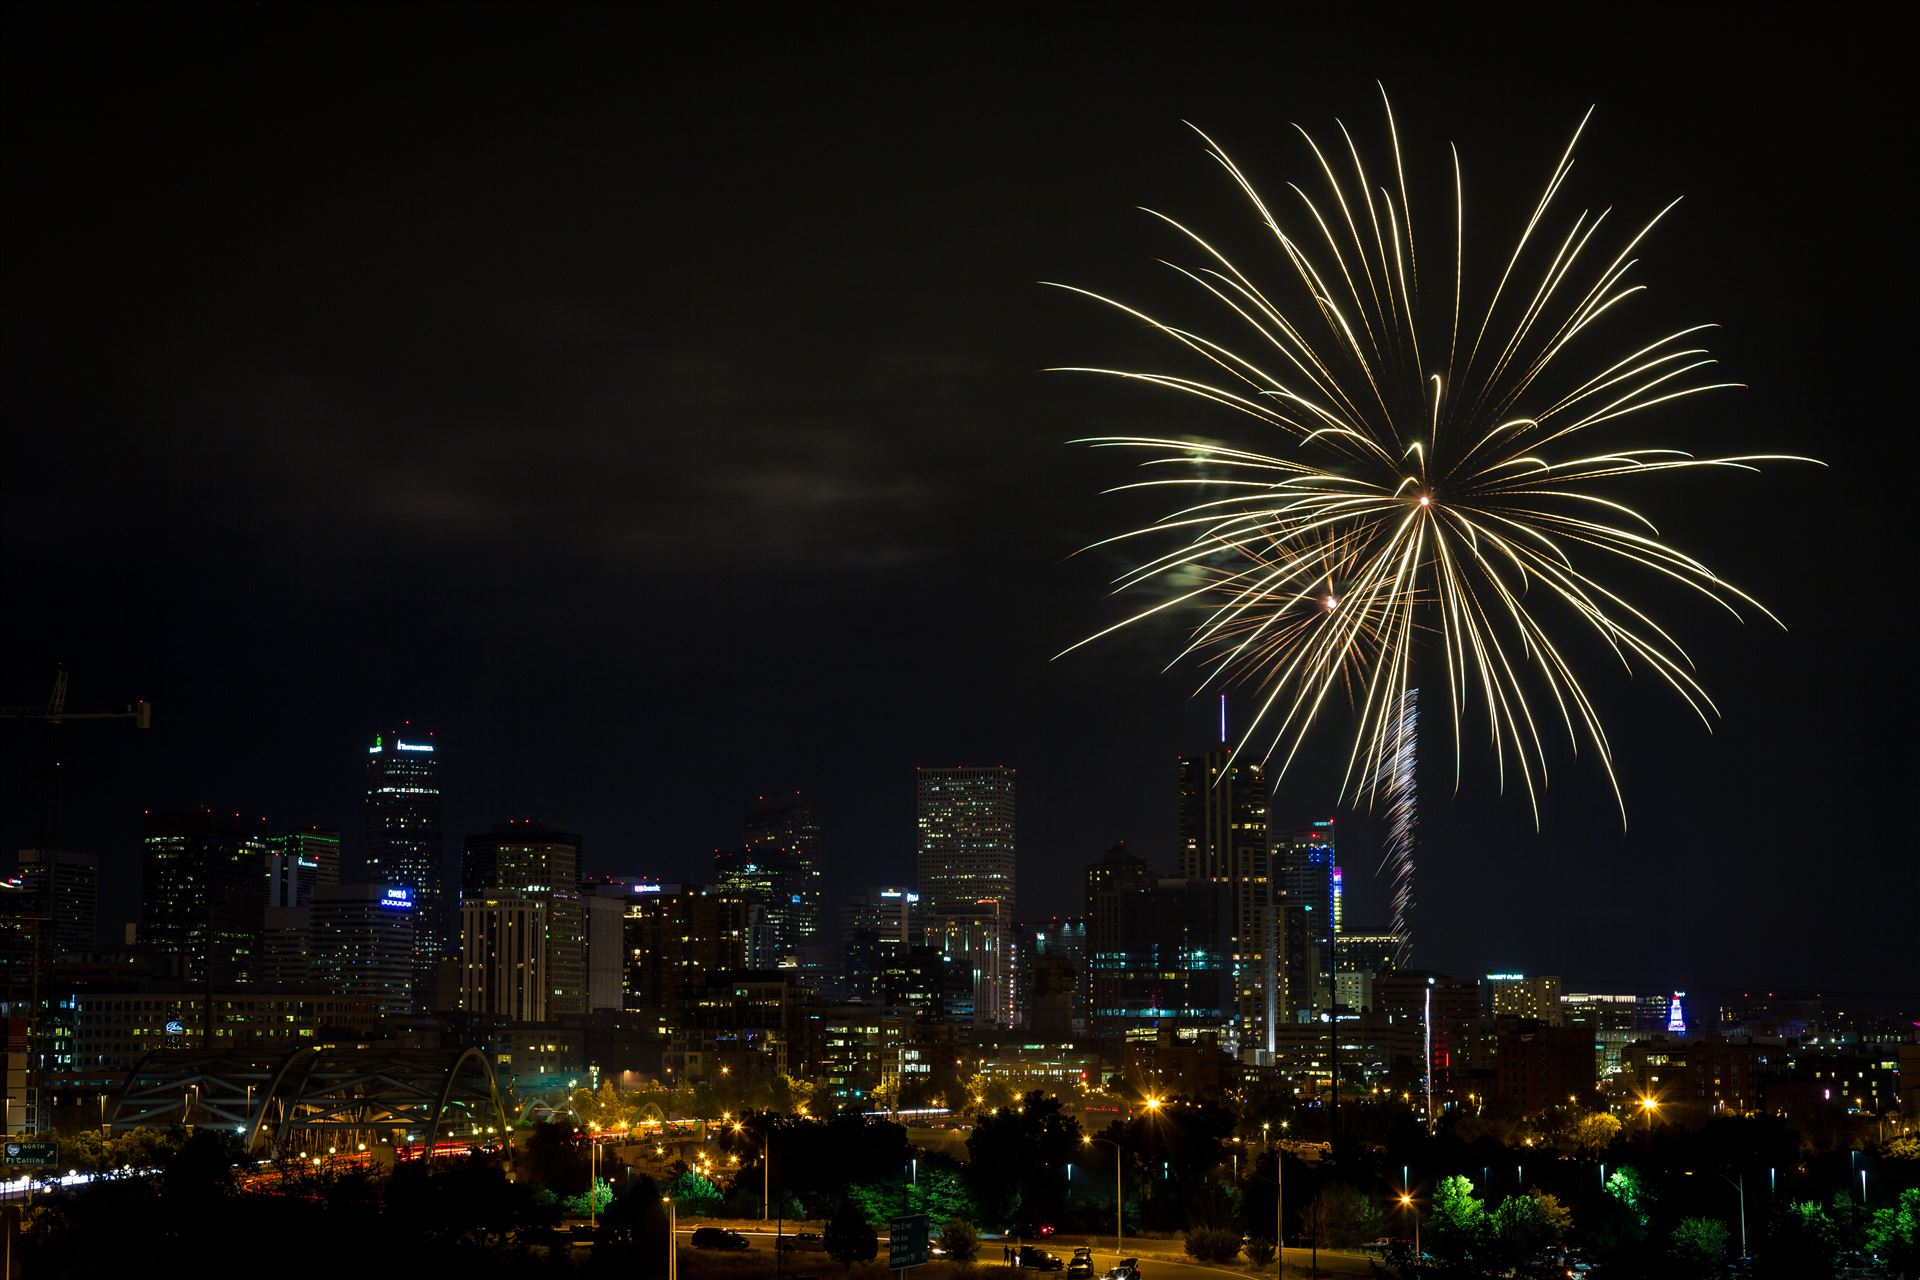 Elitch's Fireworks 2016 - 9 - Fireworks from Elitch Gardens, taken near Speer and Zuni in Denver, Colorado. by D Scott Smith